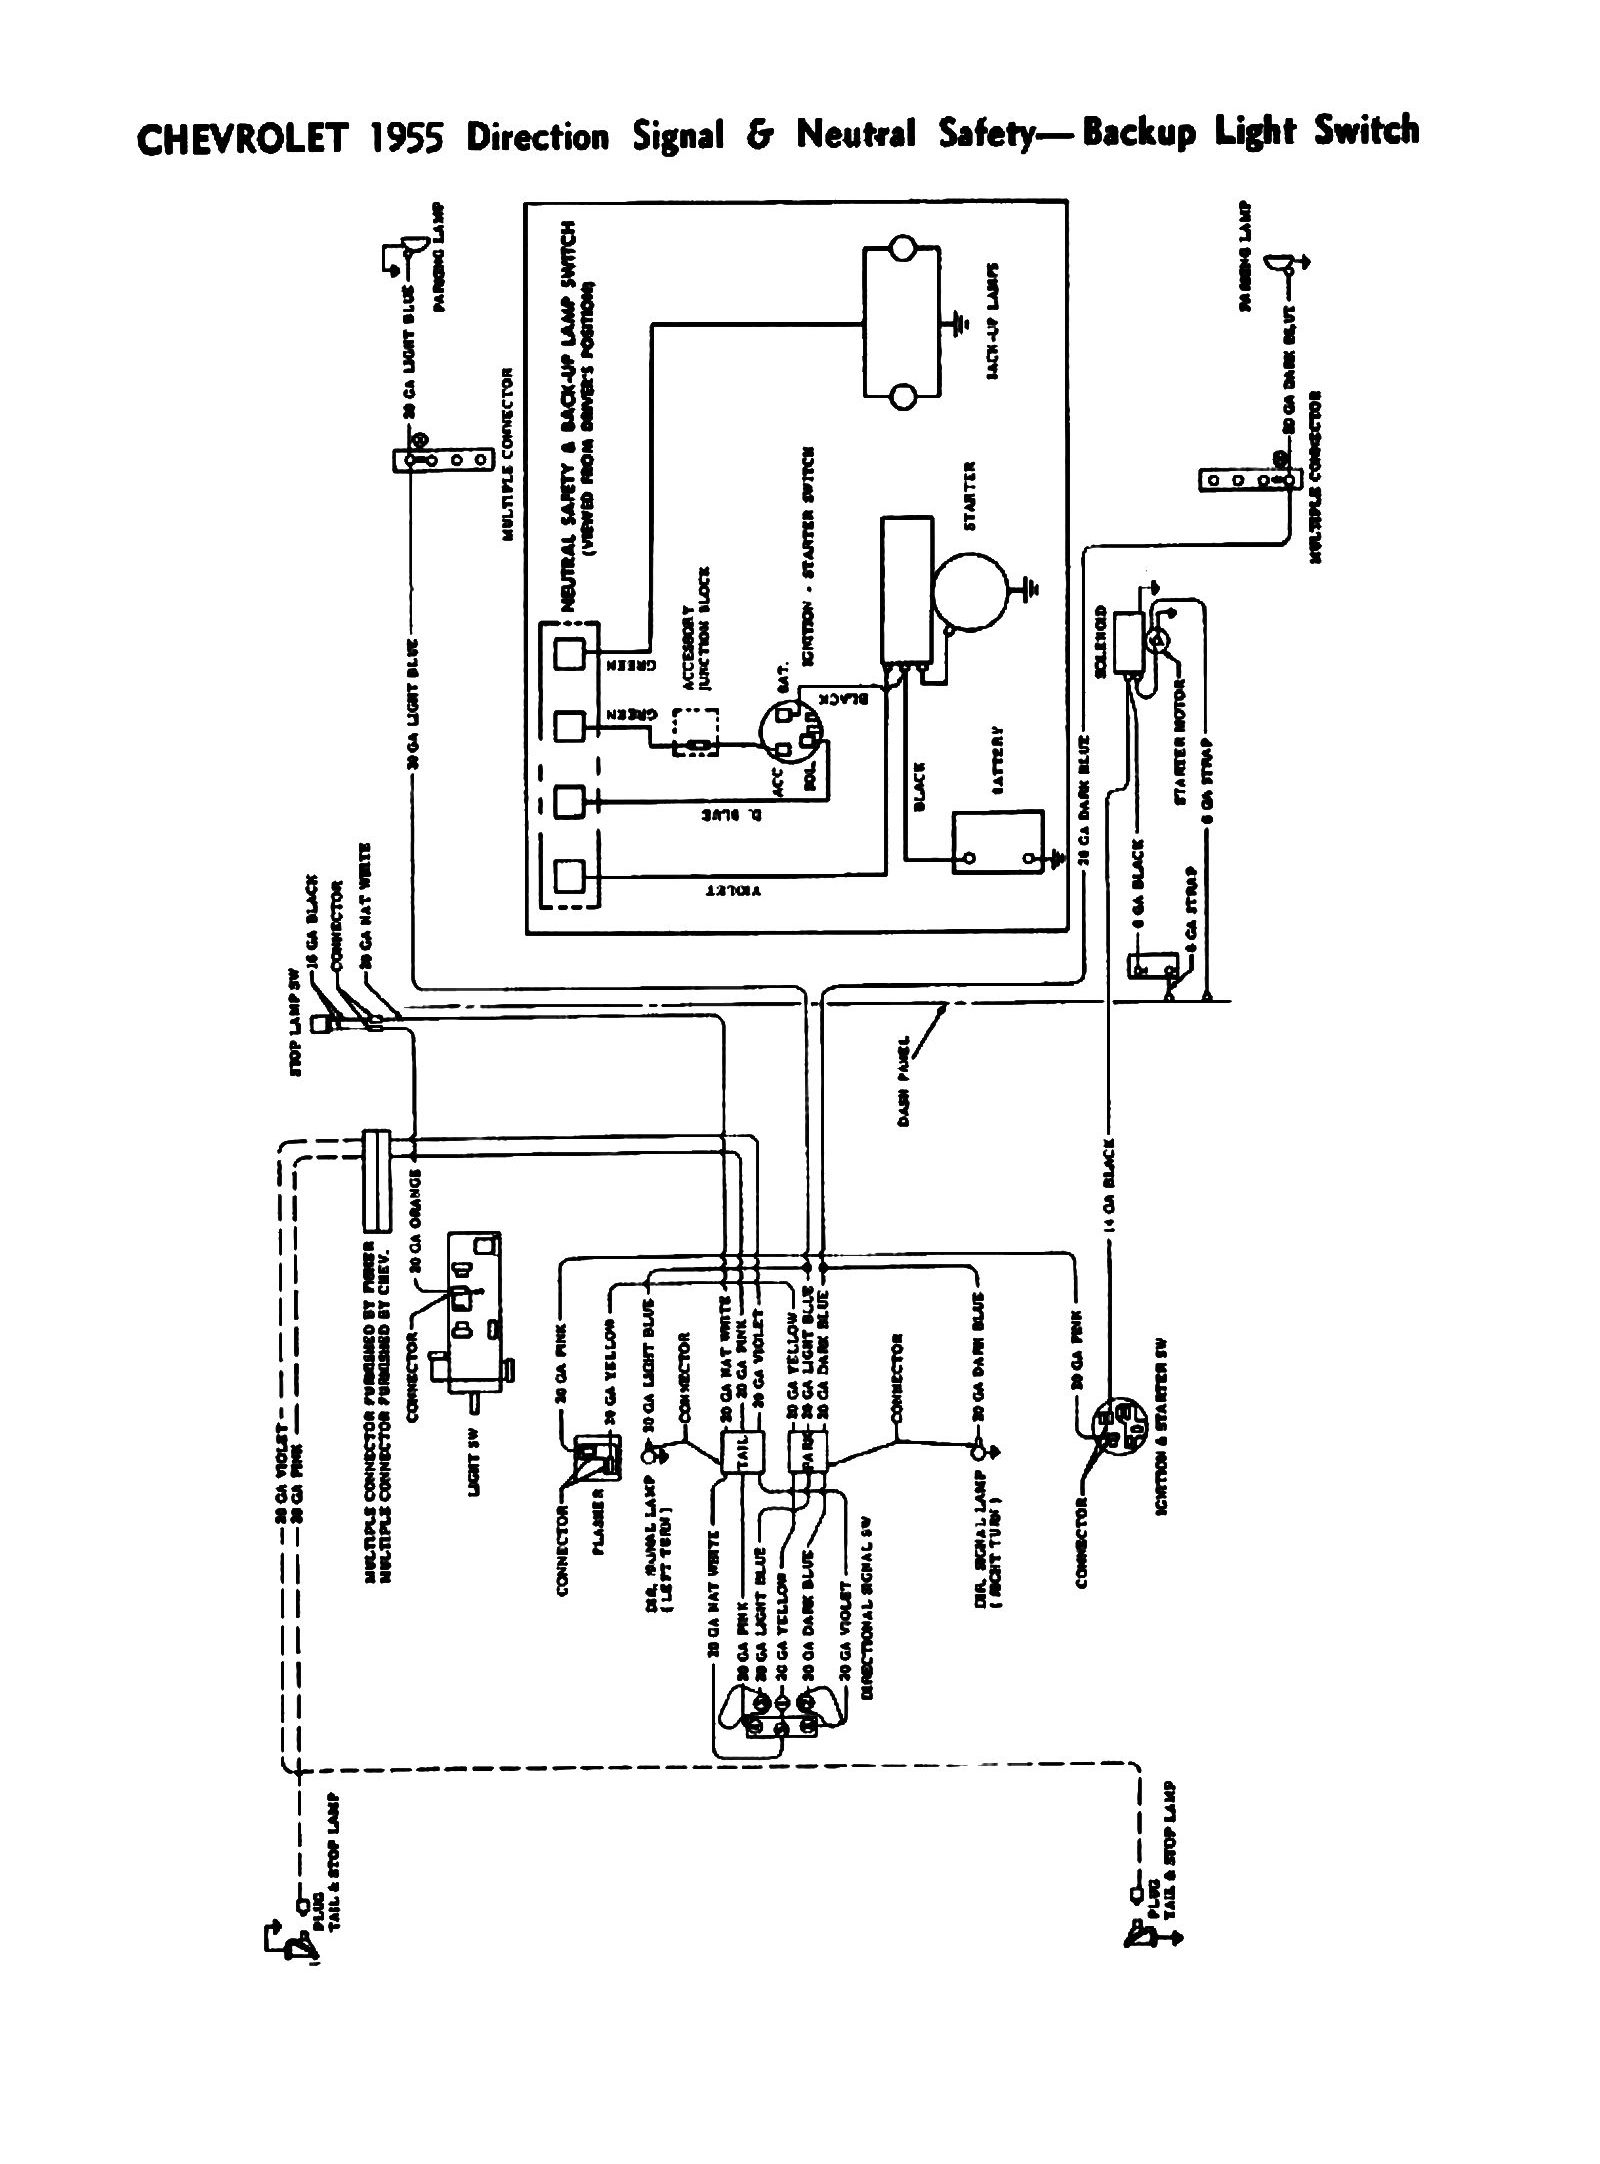 hight resolution of 1955 directional signals neutral safety backup switches